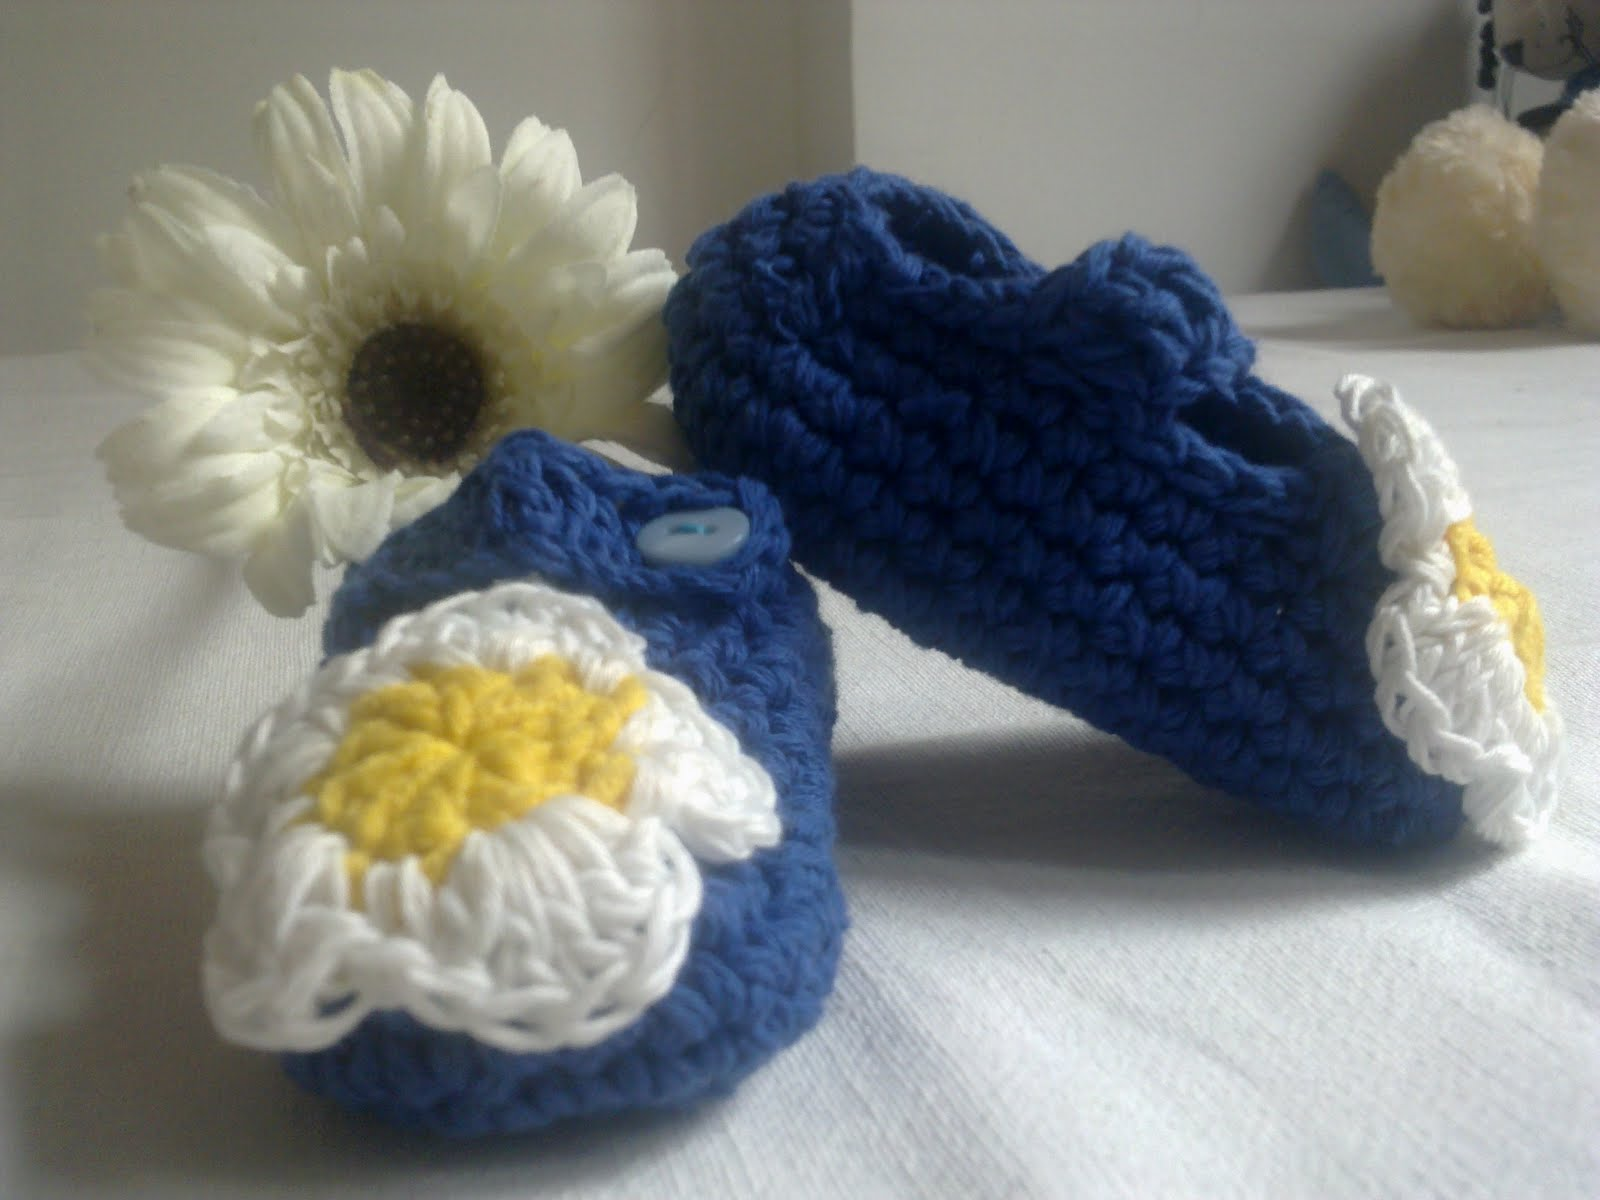 Hand-knitted booties for our little ones